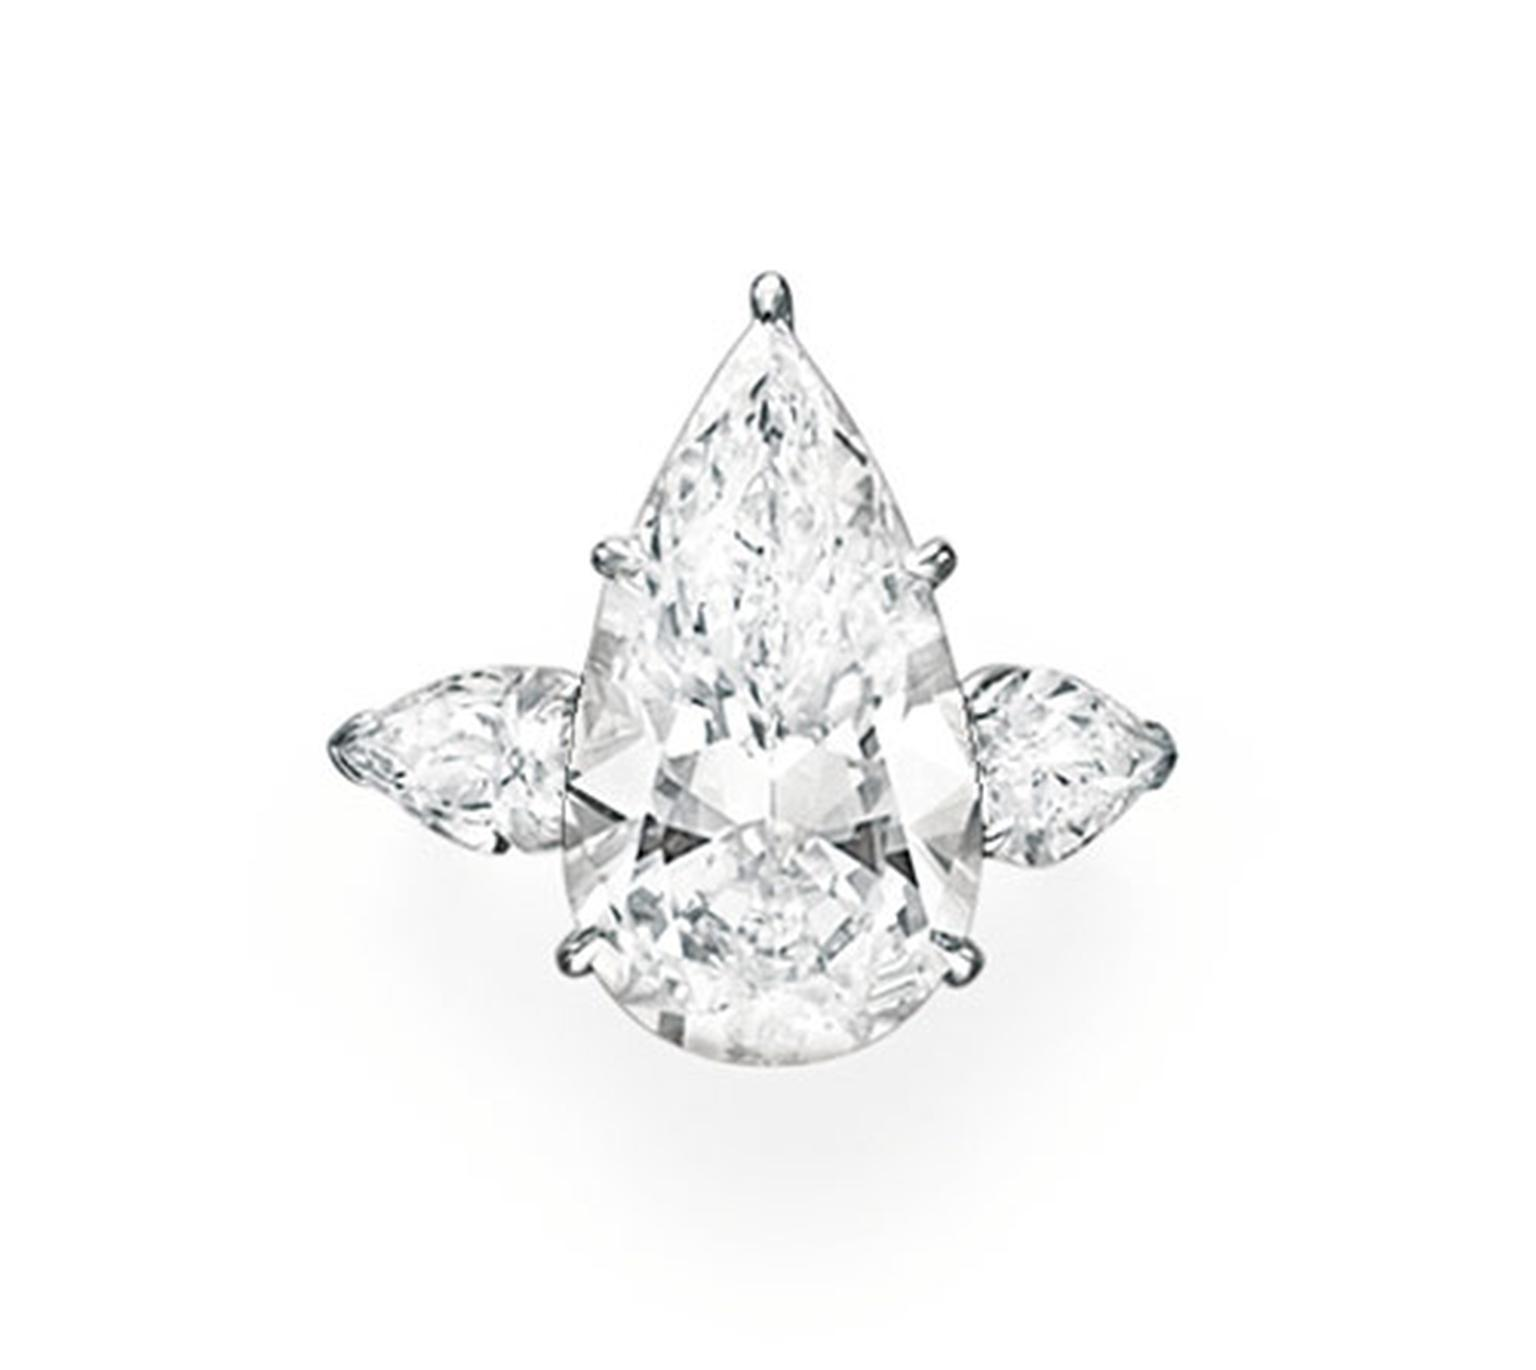 Christies-Pear-Shaped-Diamond-Ring